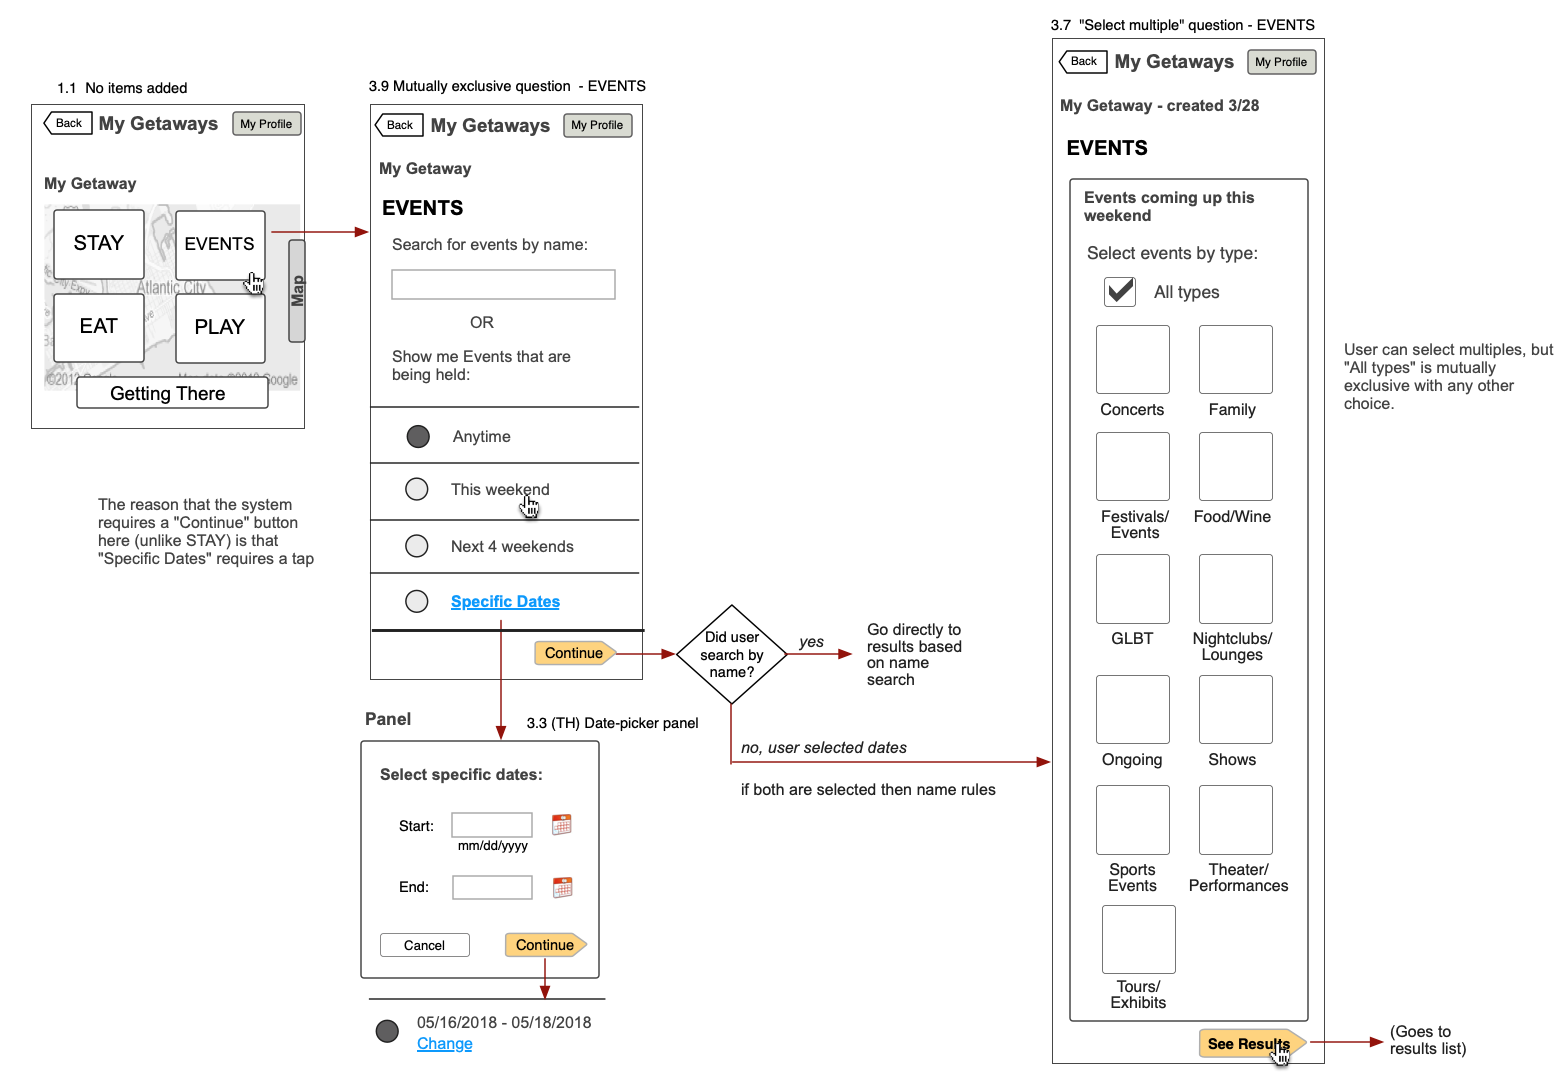 Atlantic City Getway Planner wireframe/process flow showing the sequence by which users select events.